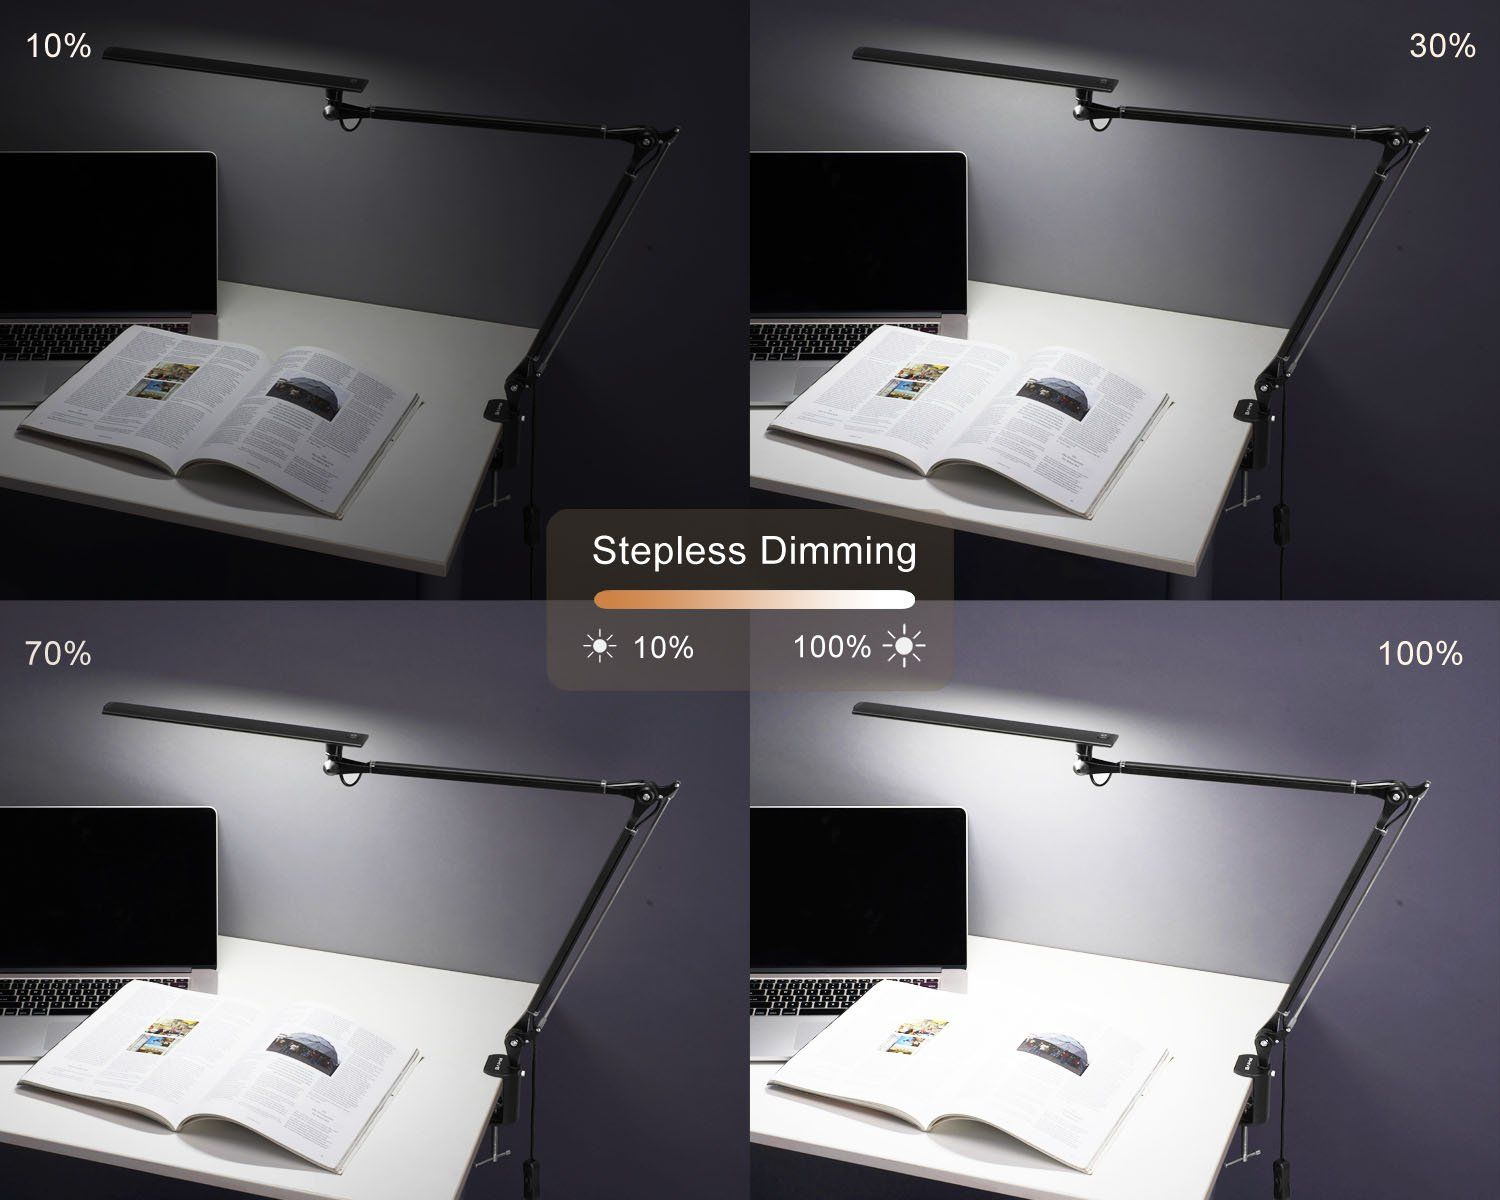 Metal Swing Arm Dimmable Drafting Phive LED Desk Lamp Architect Task Lamp